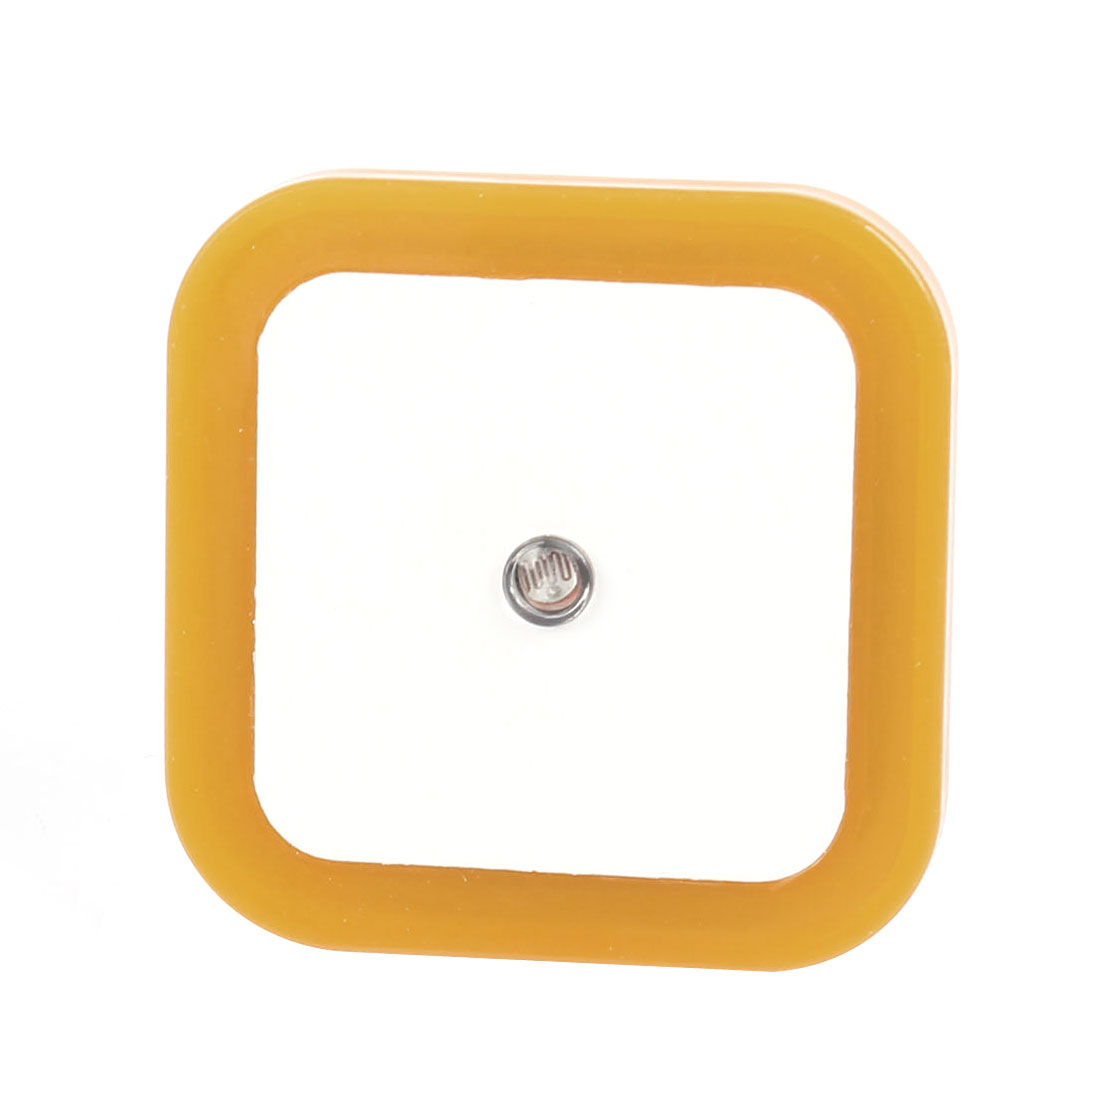 US Plug 65mm x 65mm Energy Saving Yellow Light LED Control Sensor Night Lamp AC 110V-220V